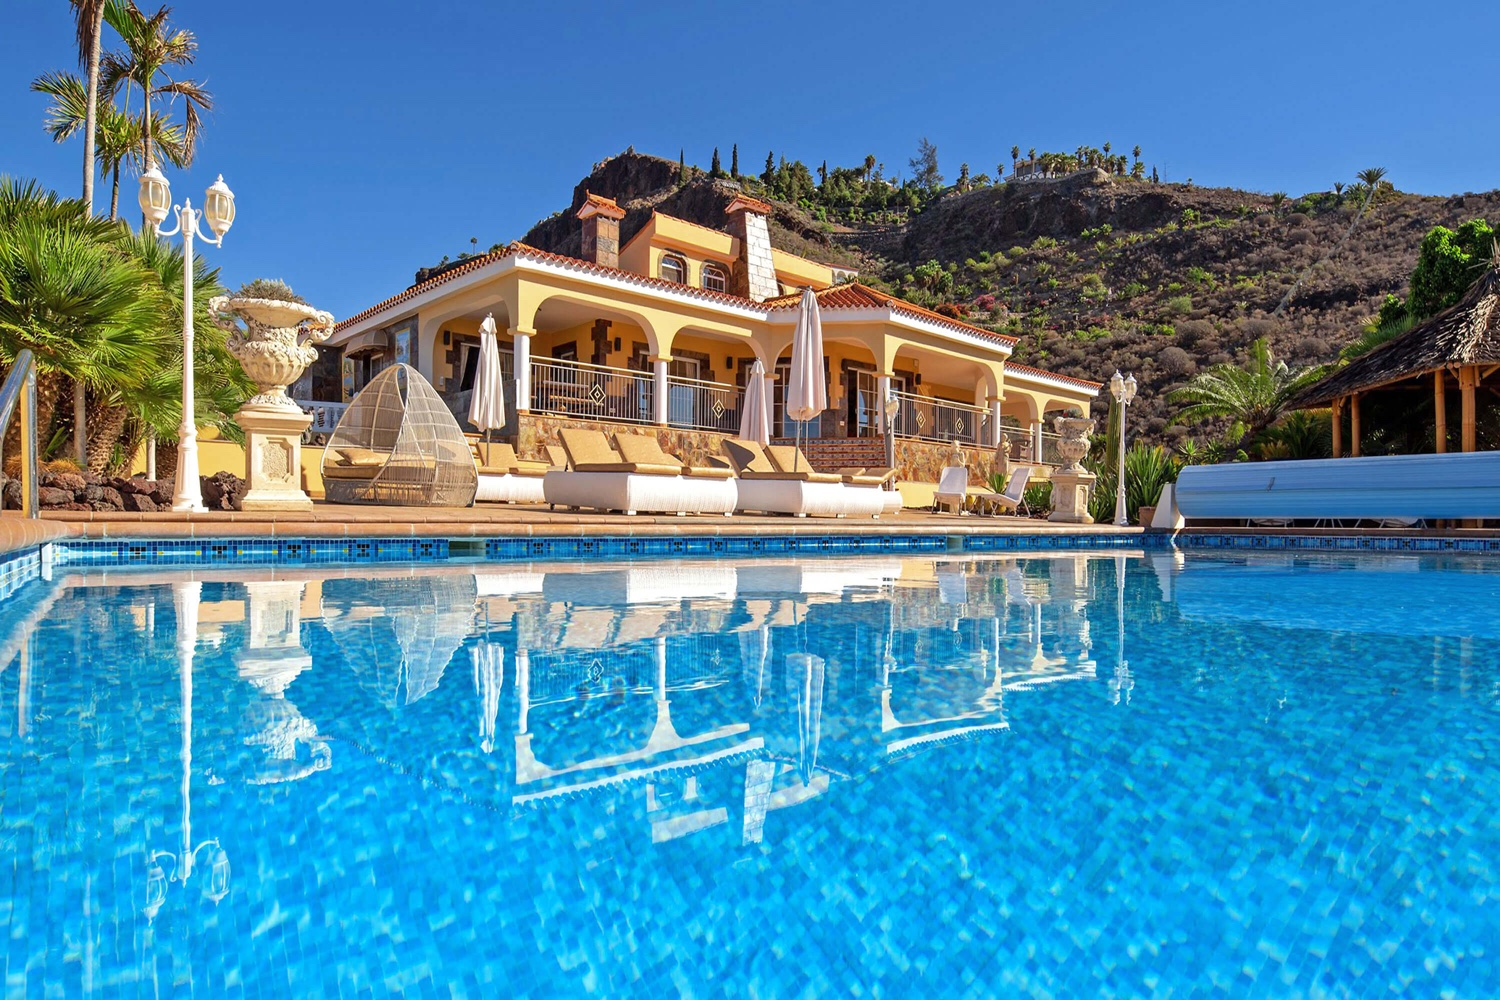 Spectacular holiday villa with a special touch in the most beautiful panoramic situation overlooking the sea and mountains, swimming pool, gym, sauna and a steam bath make the exclusive holidays perfect.